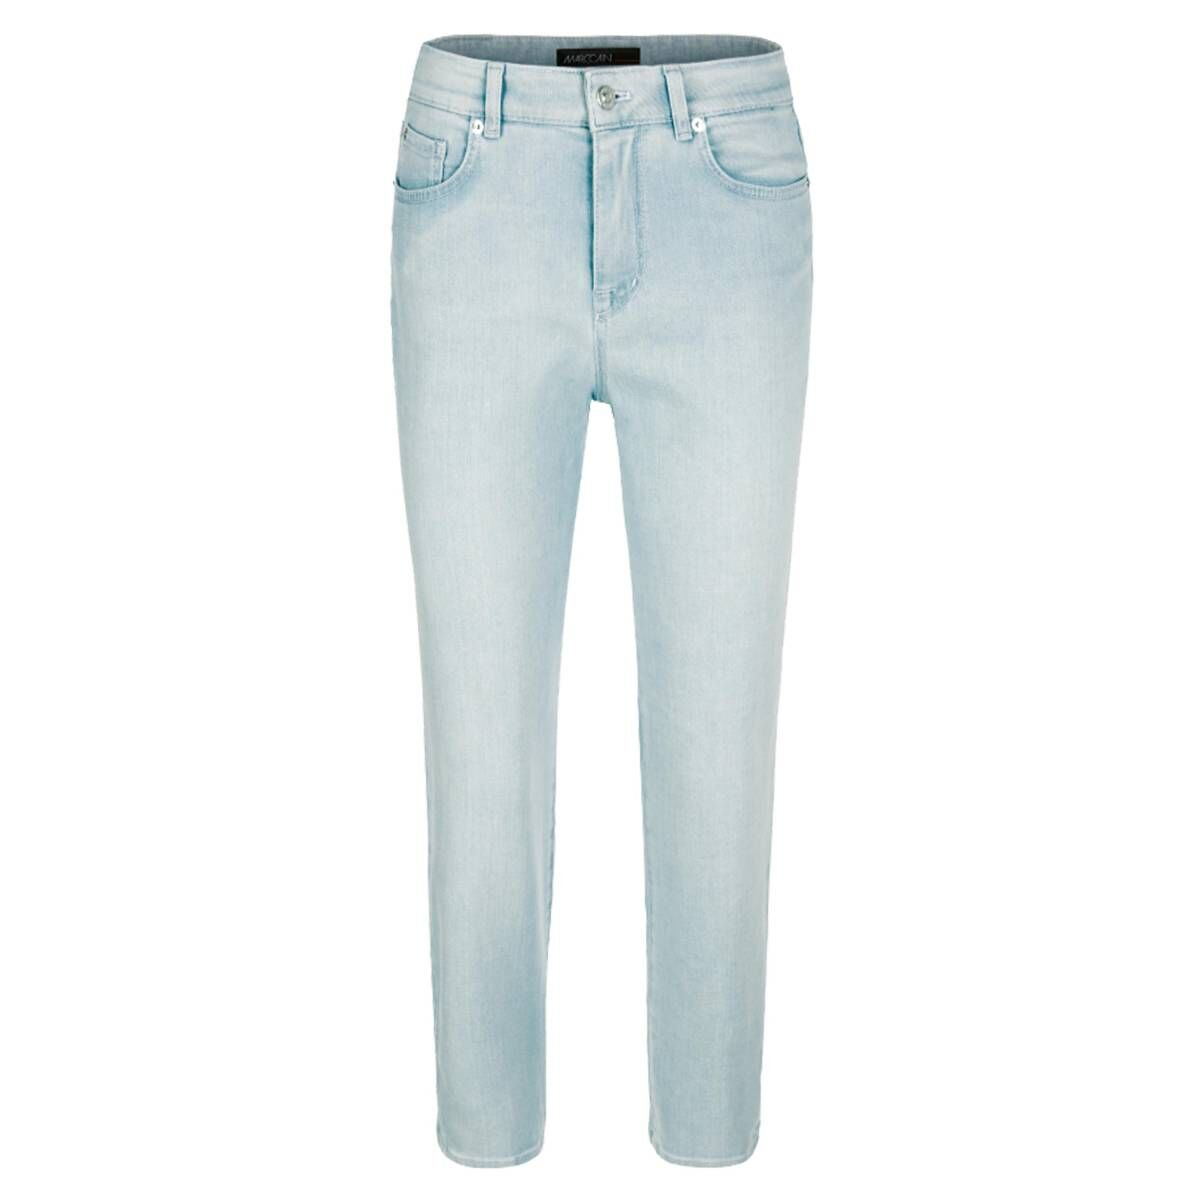 Negotiate corner more and more  Marc Cain trousers NS8208 D12 Jeans Blue by Penninkhoffashion.com